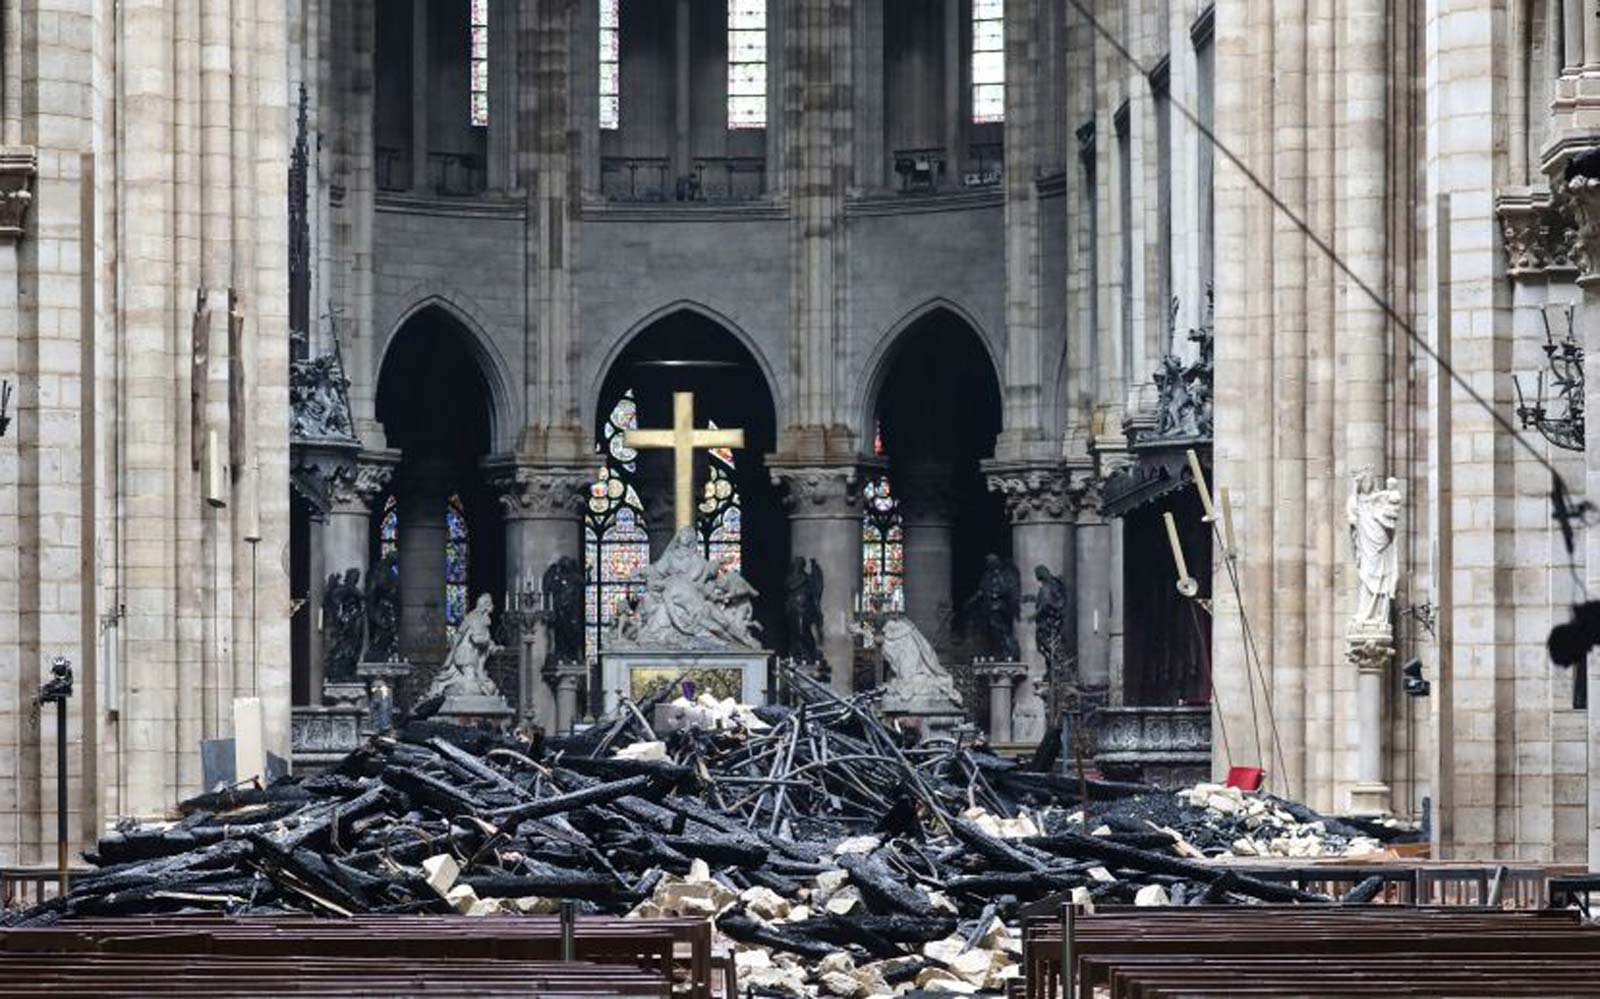 A picture taken on April 16, 2019 shows the altar surrounded by charred debris inside the Notre-Dame Cathedral in Paris in the aftermath of a fire that devastated the cathedral.